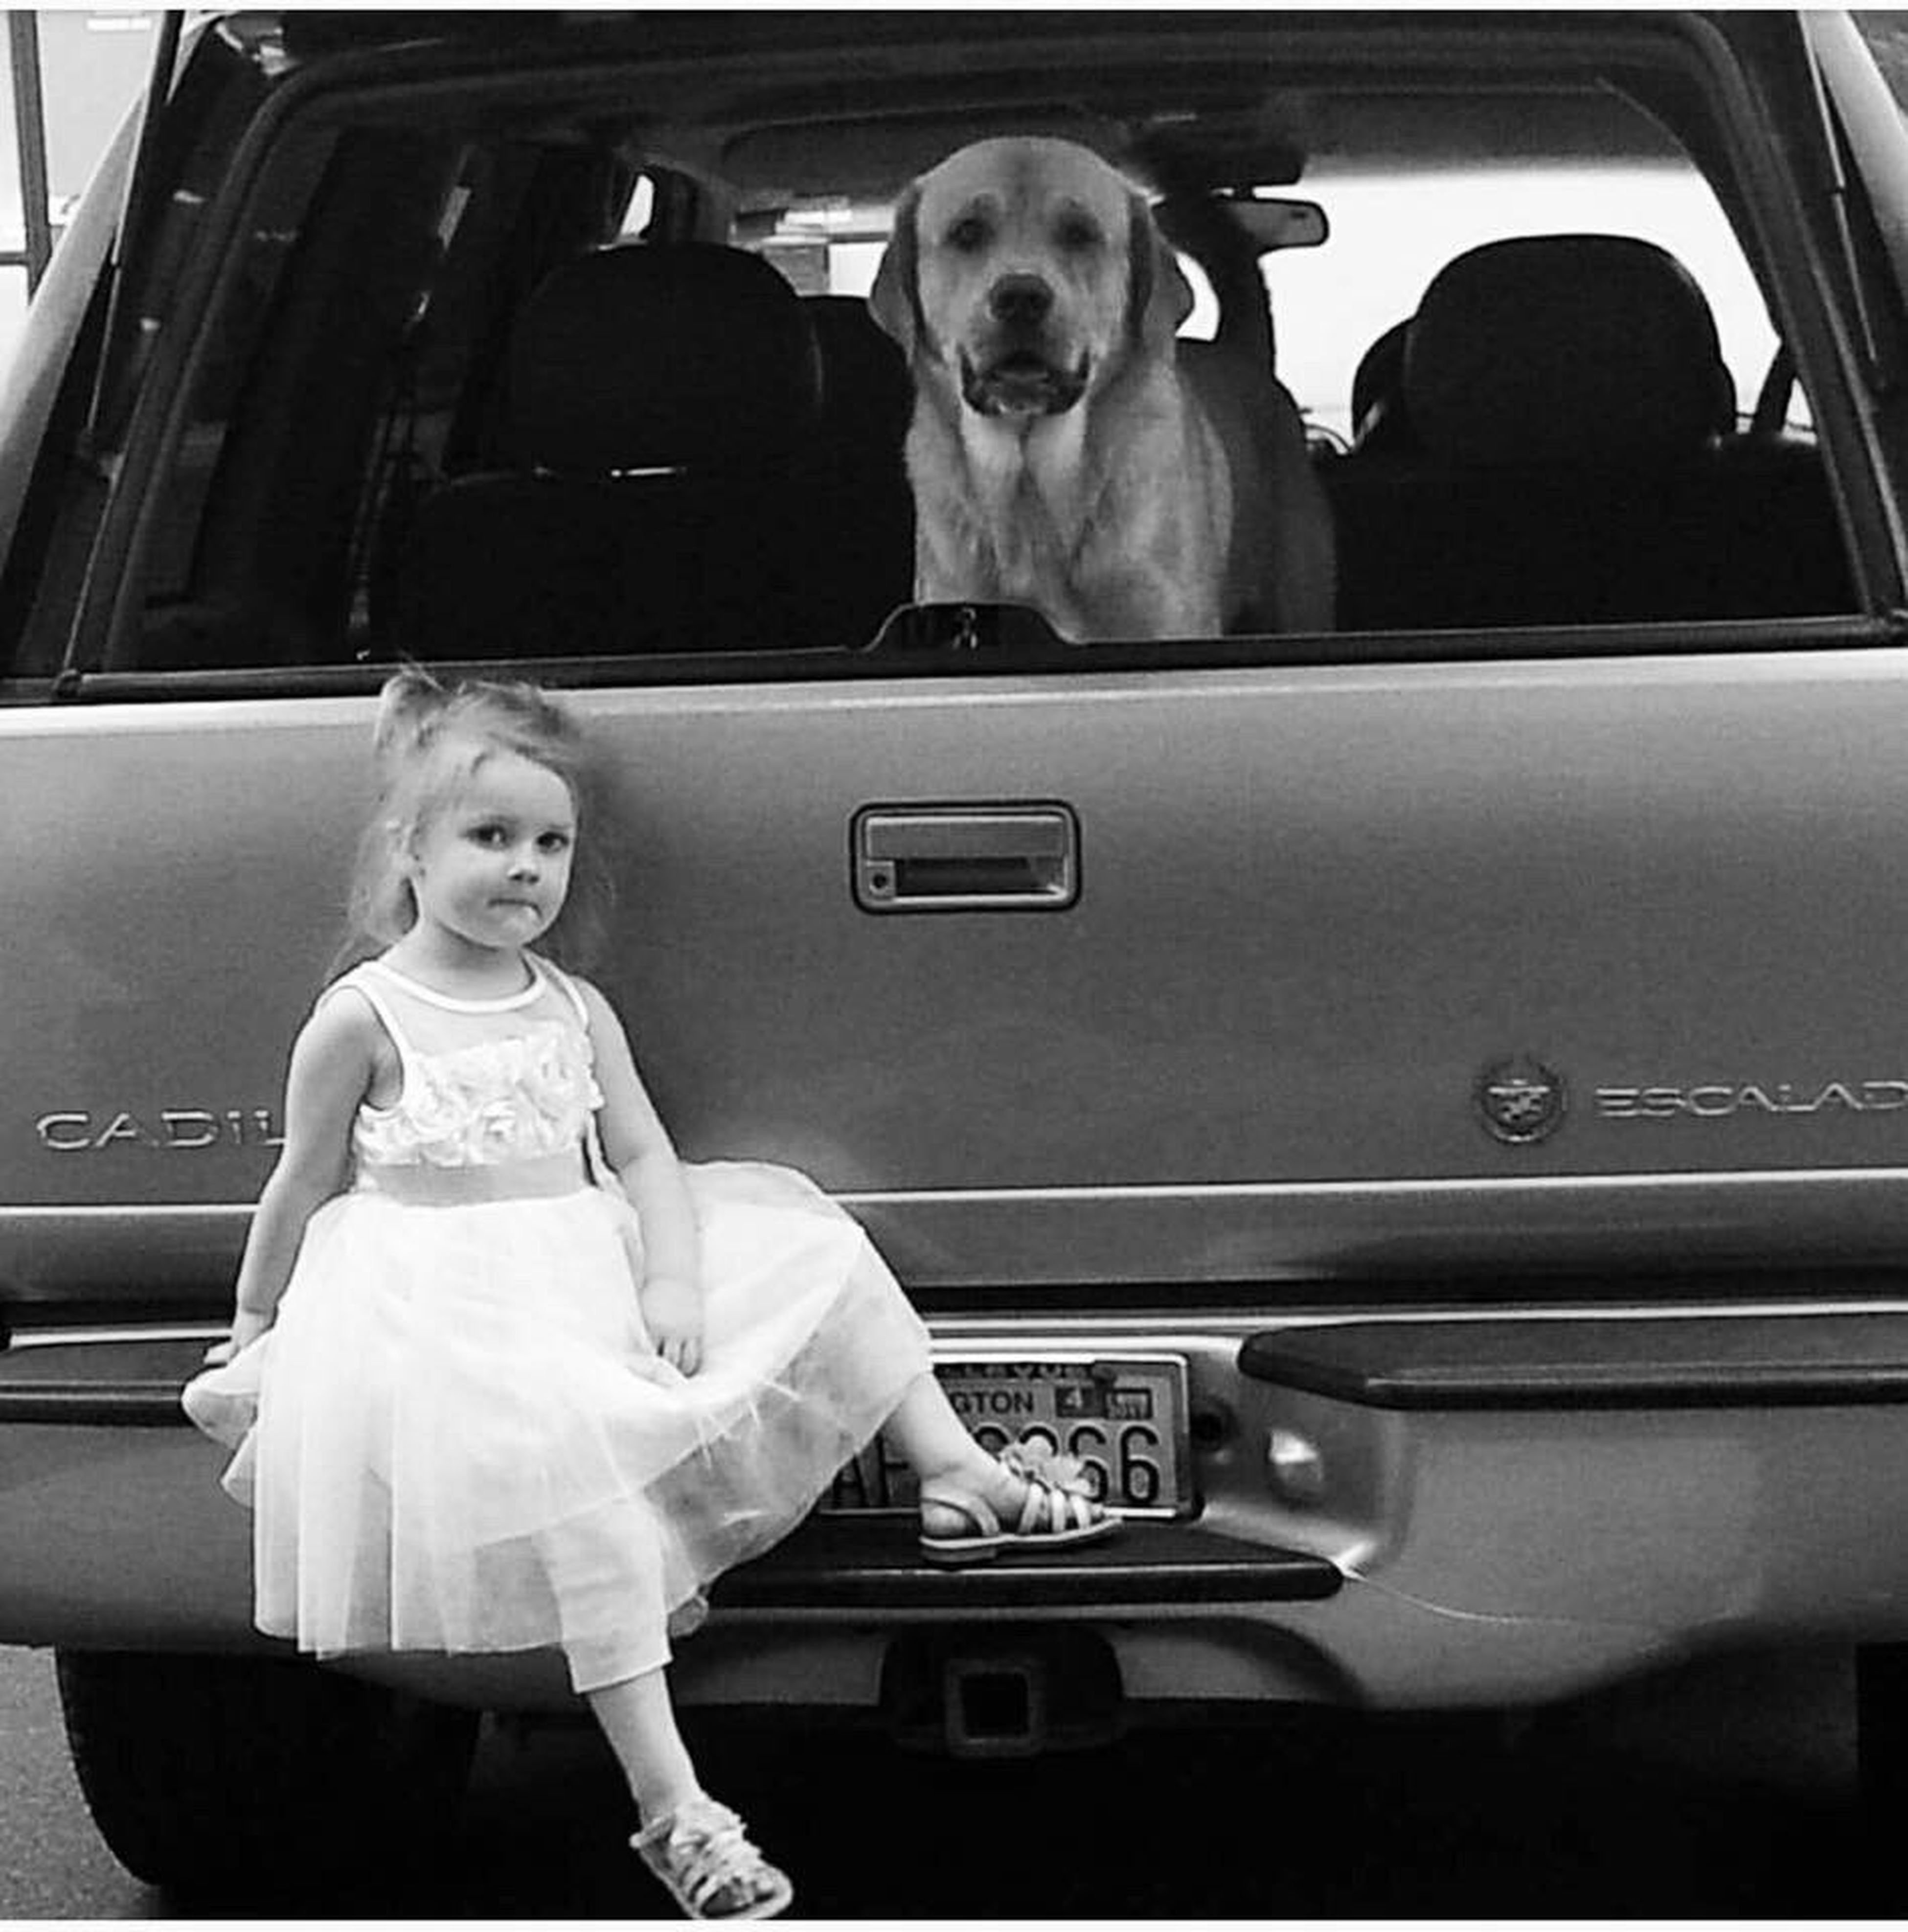 EyeEmNewHere Beauty And The Beast Zues Black And White Photography So Serious Family Real People Beauty Pet Portraits Real Life Awesome_shots Little Girl Sweet Face Looking At Camera Childhood New To Photography Puppy Love Seriousface Big Dog Her Protector Black And White The Week On EyeEm